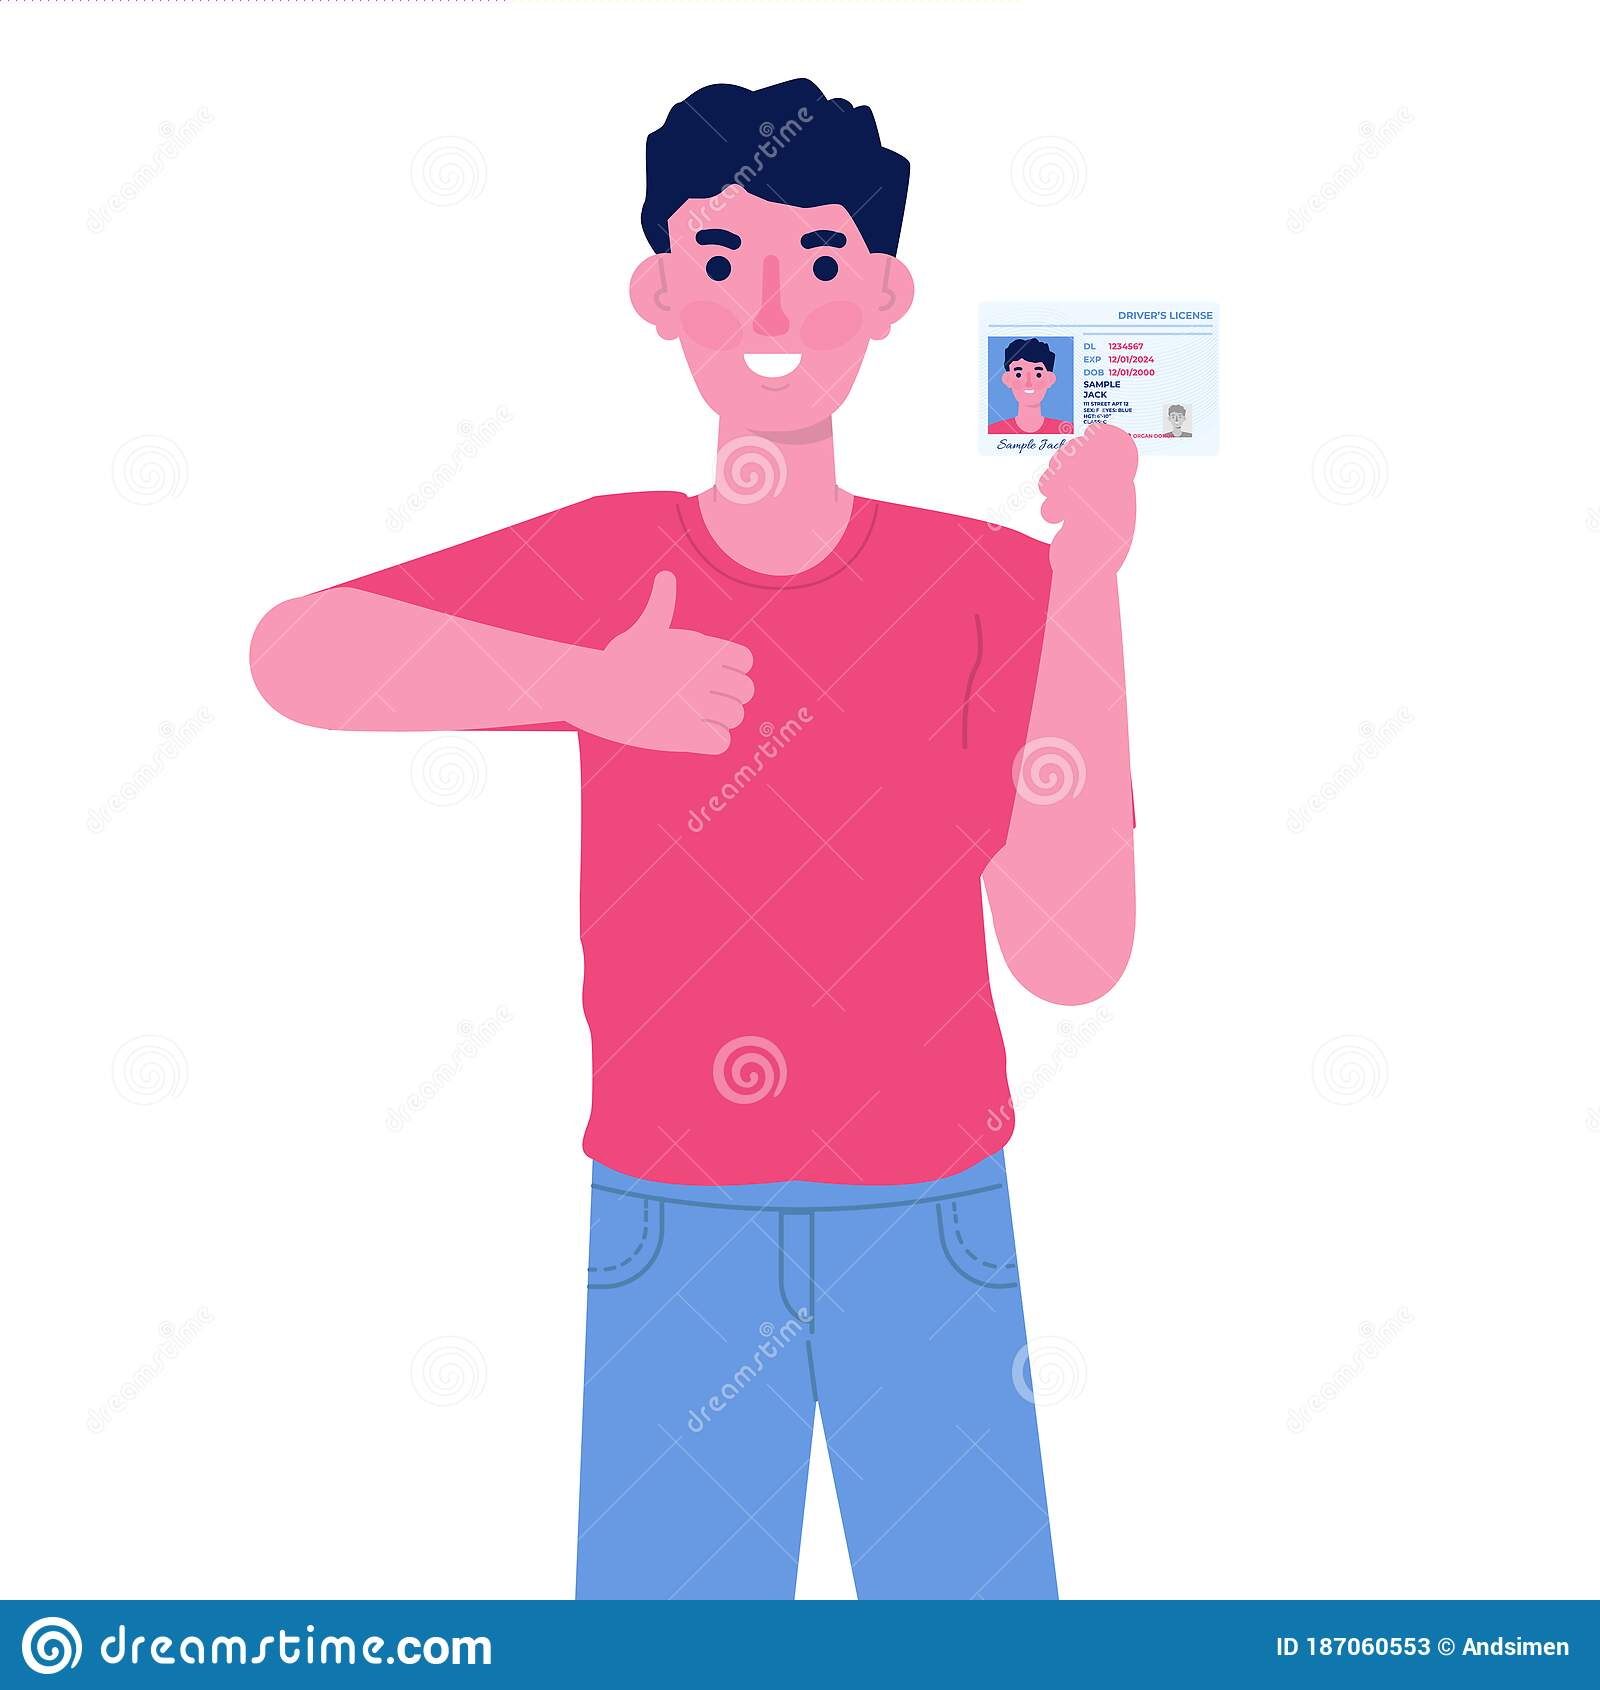 Man Holding In Hand Car Driver License Plastic Card. Stock Vector -  Illustration of name, citizen: 187060553